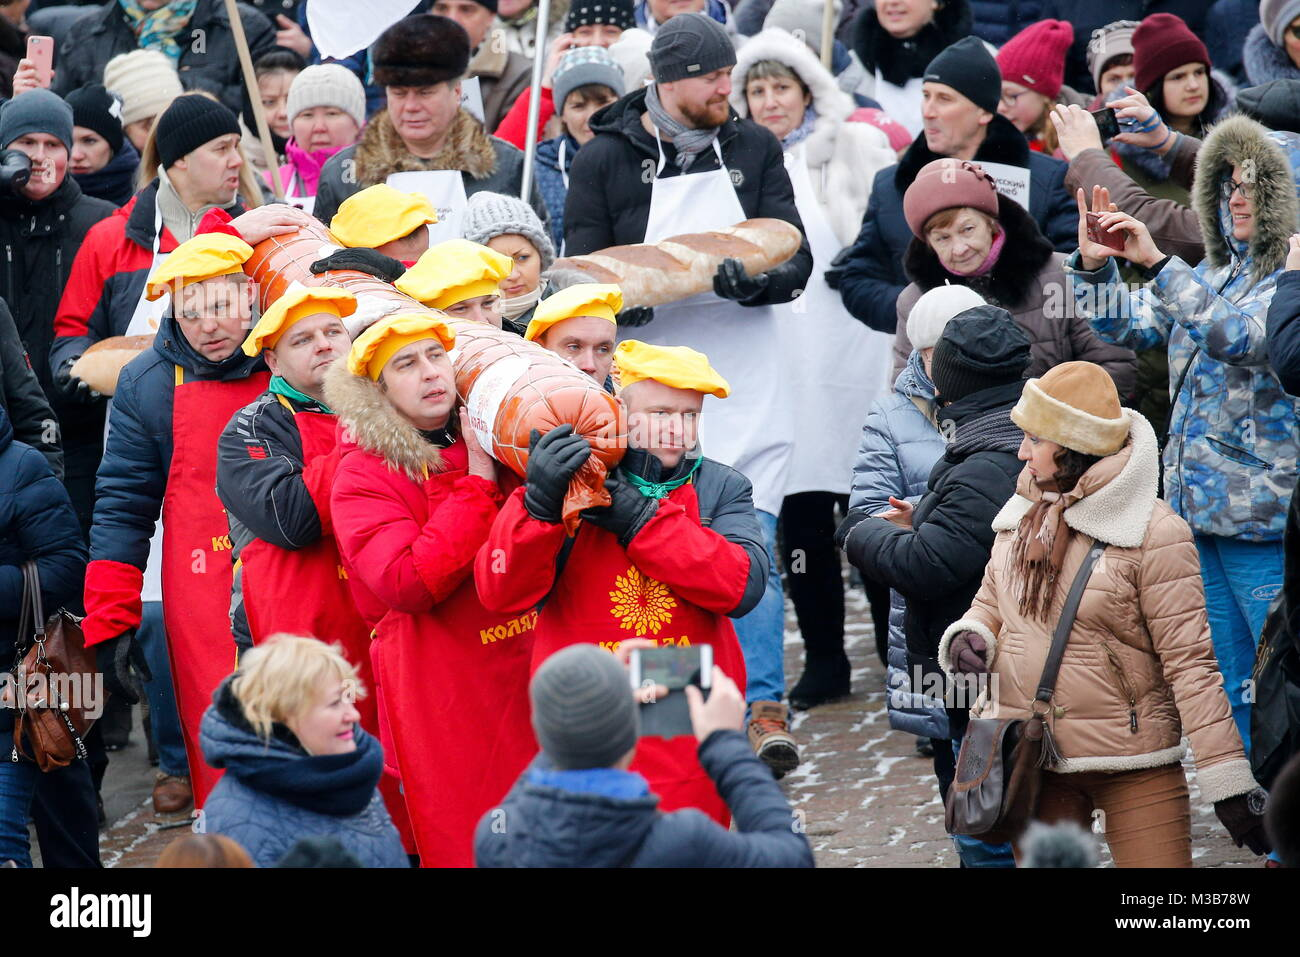 Kaliningrad, Russia. 10th Feb, 2018. KALININGRAD, RUSSIA - FEBRUARY 10, 2018: A sausage weighing 130kg with a diameter Stock Photo